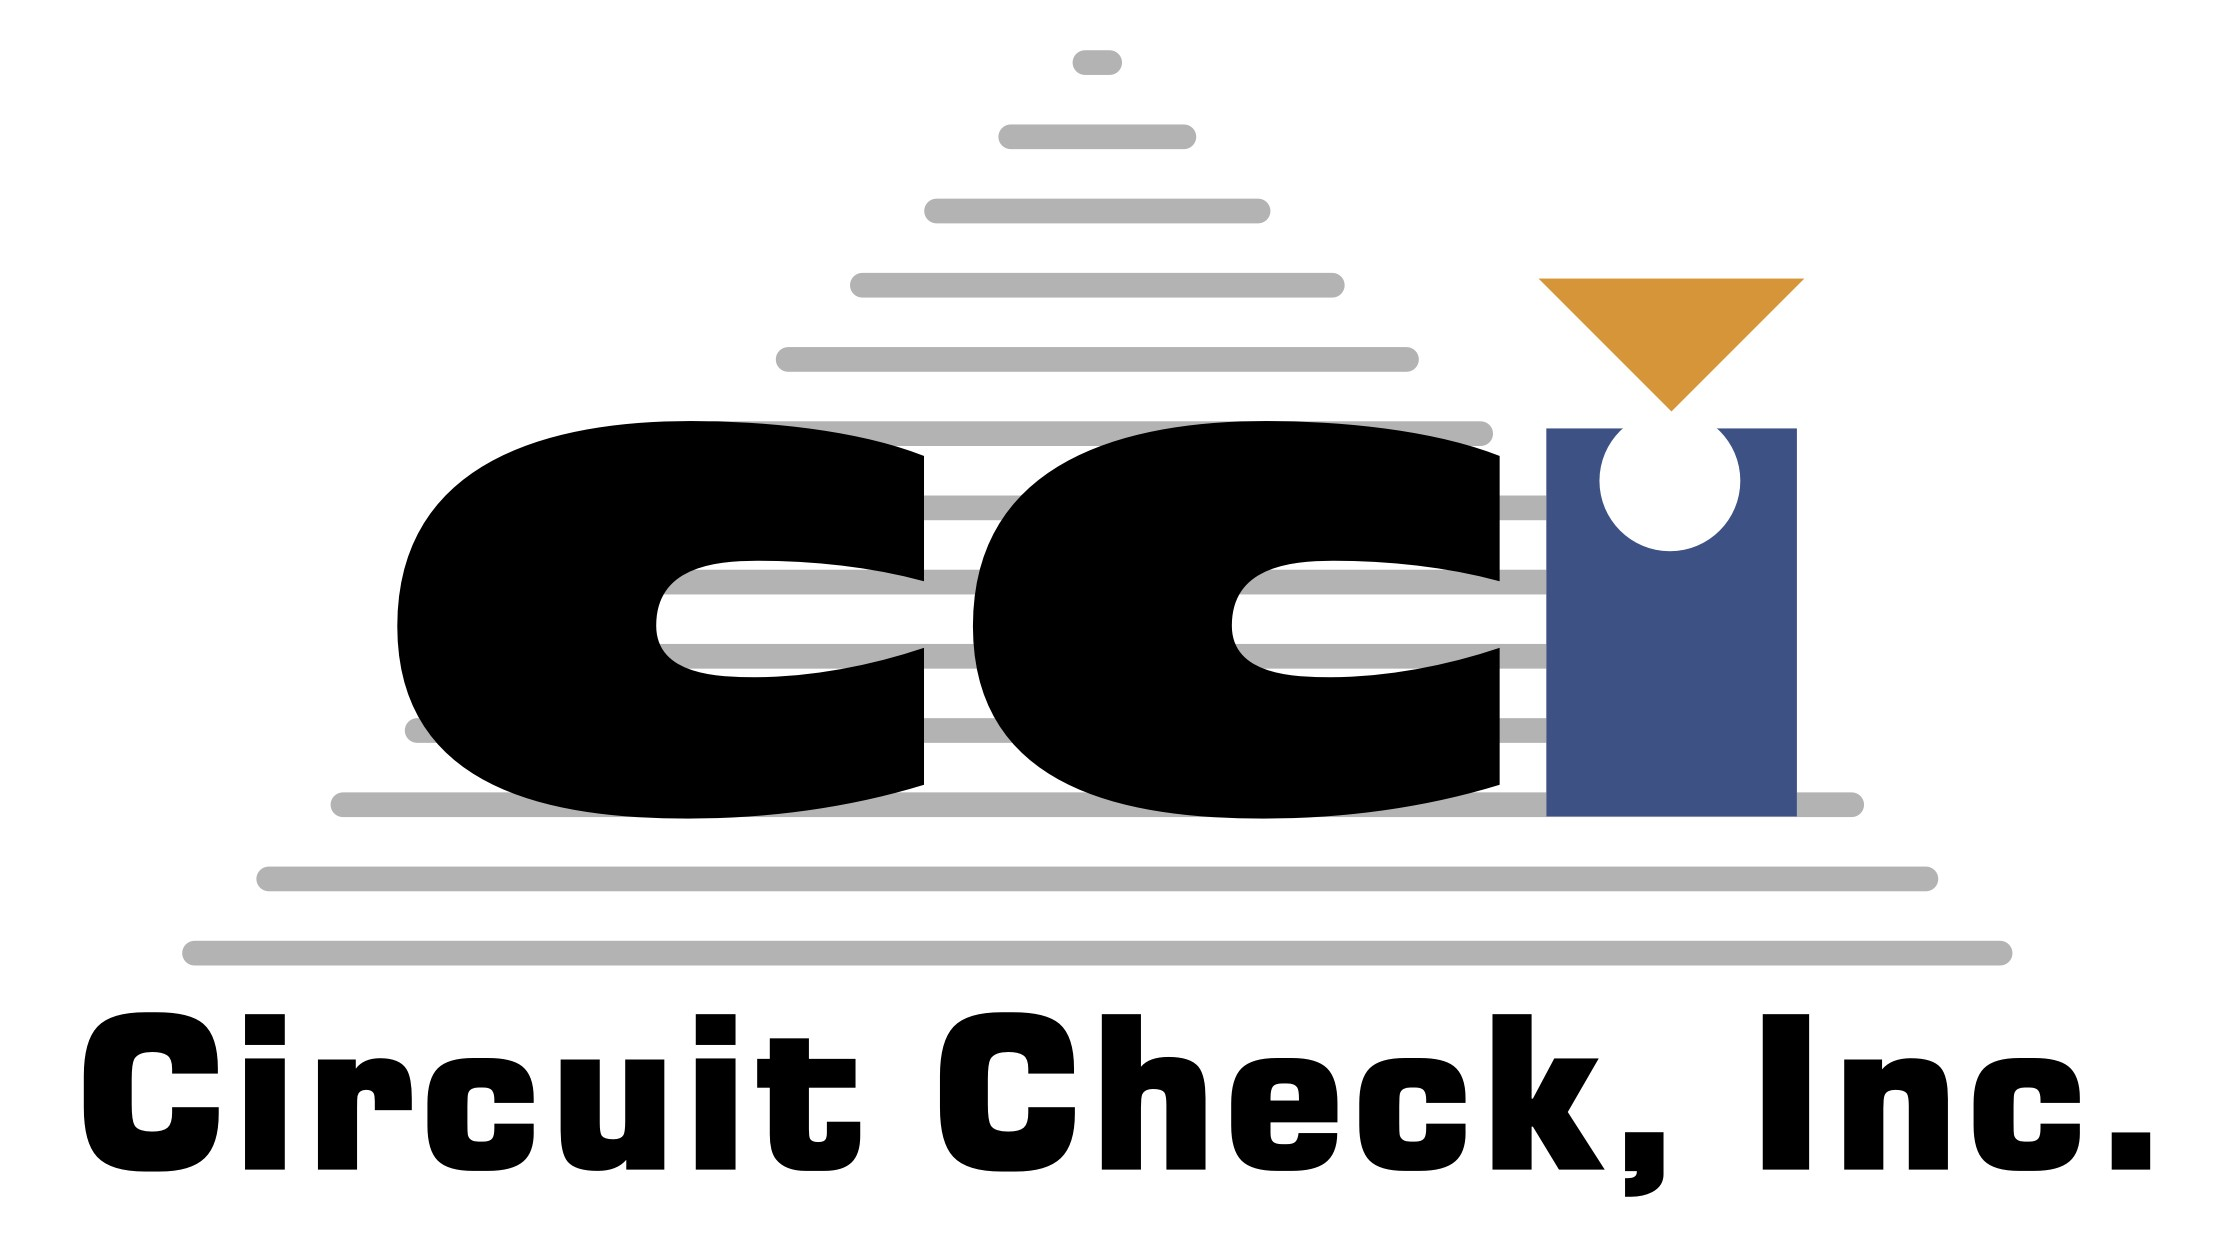 Circuit Check, Inc.